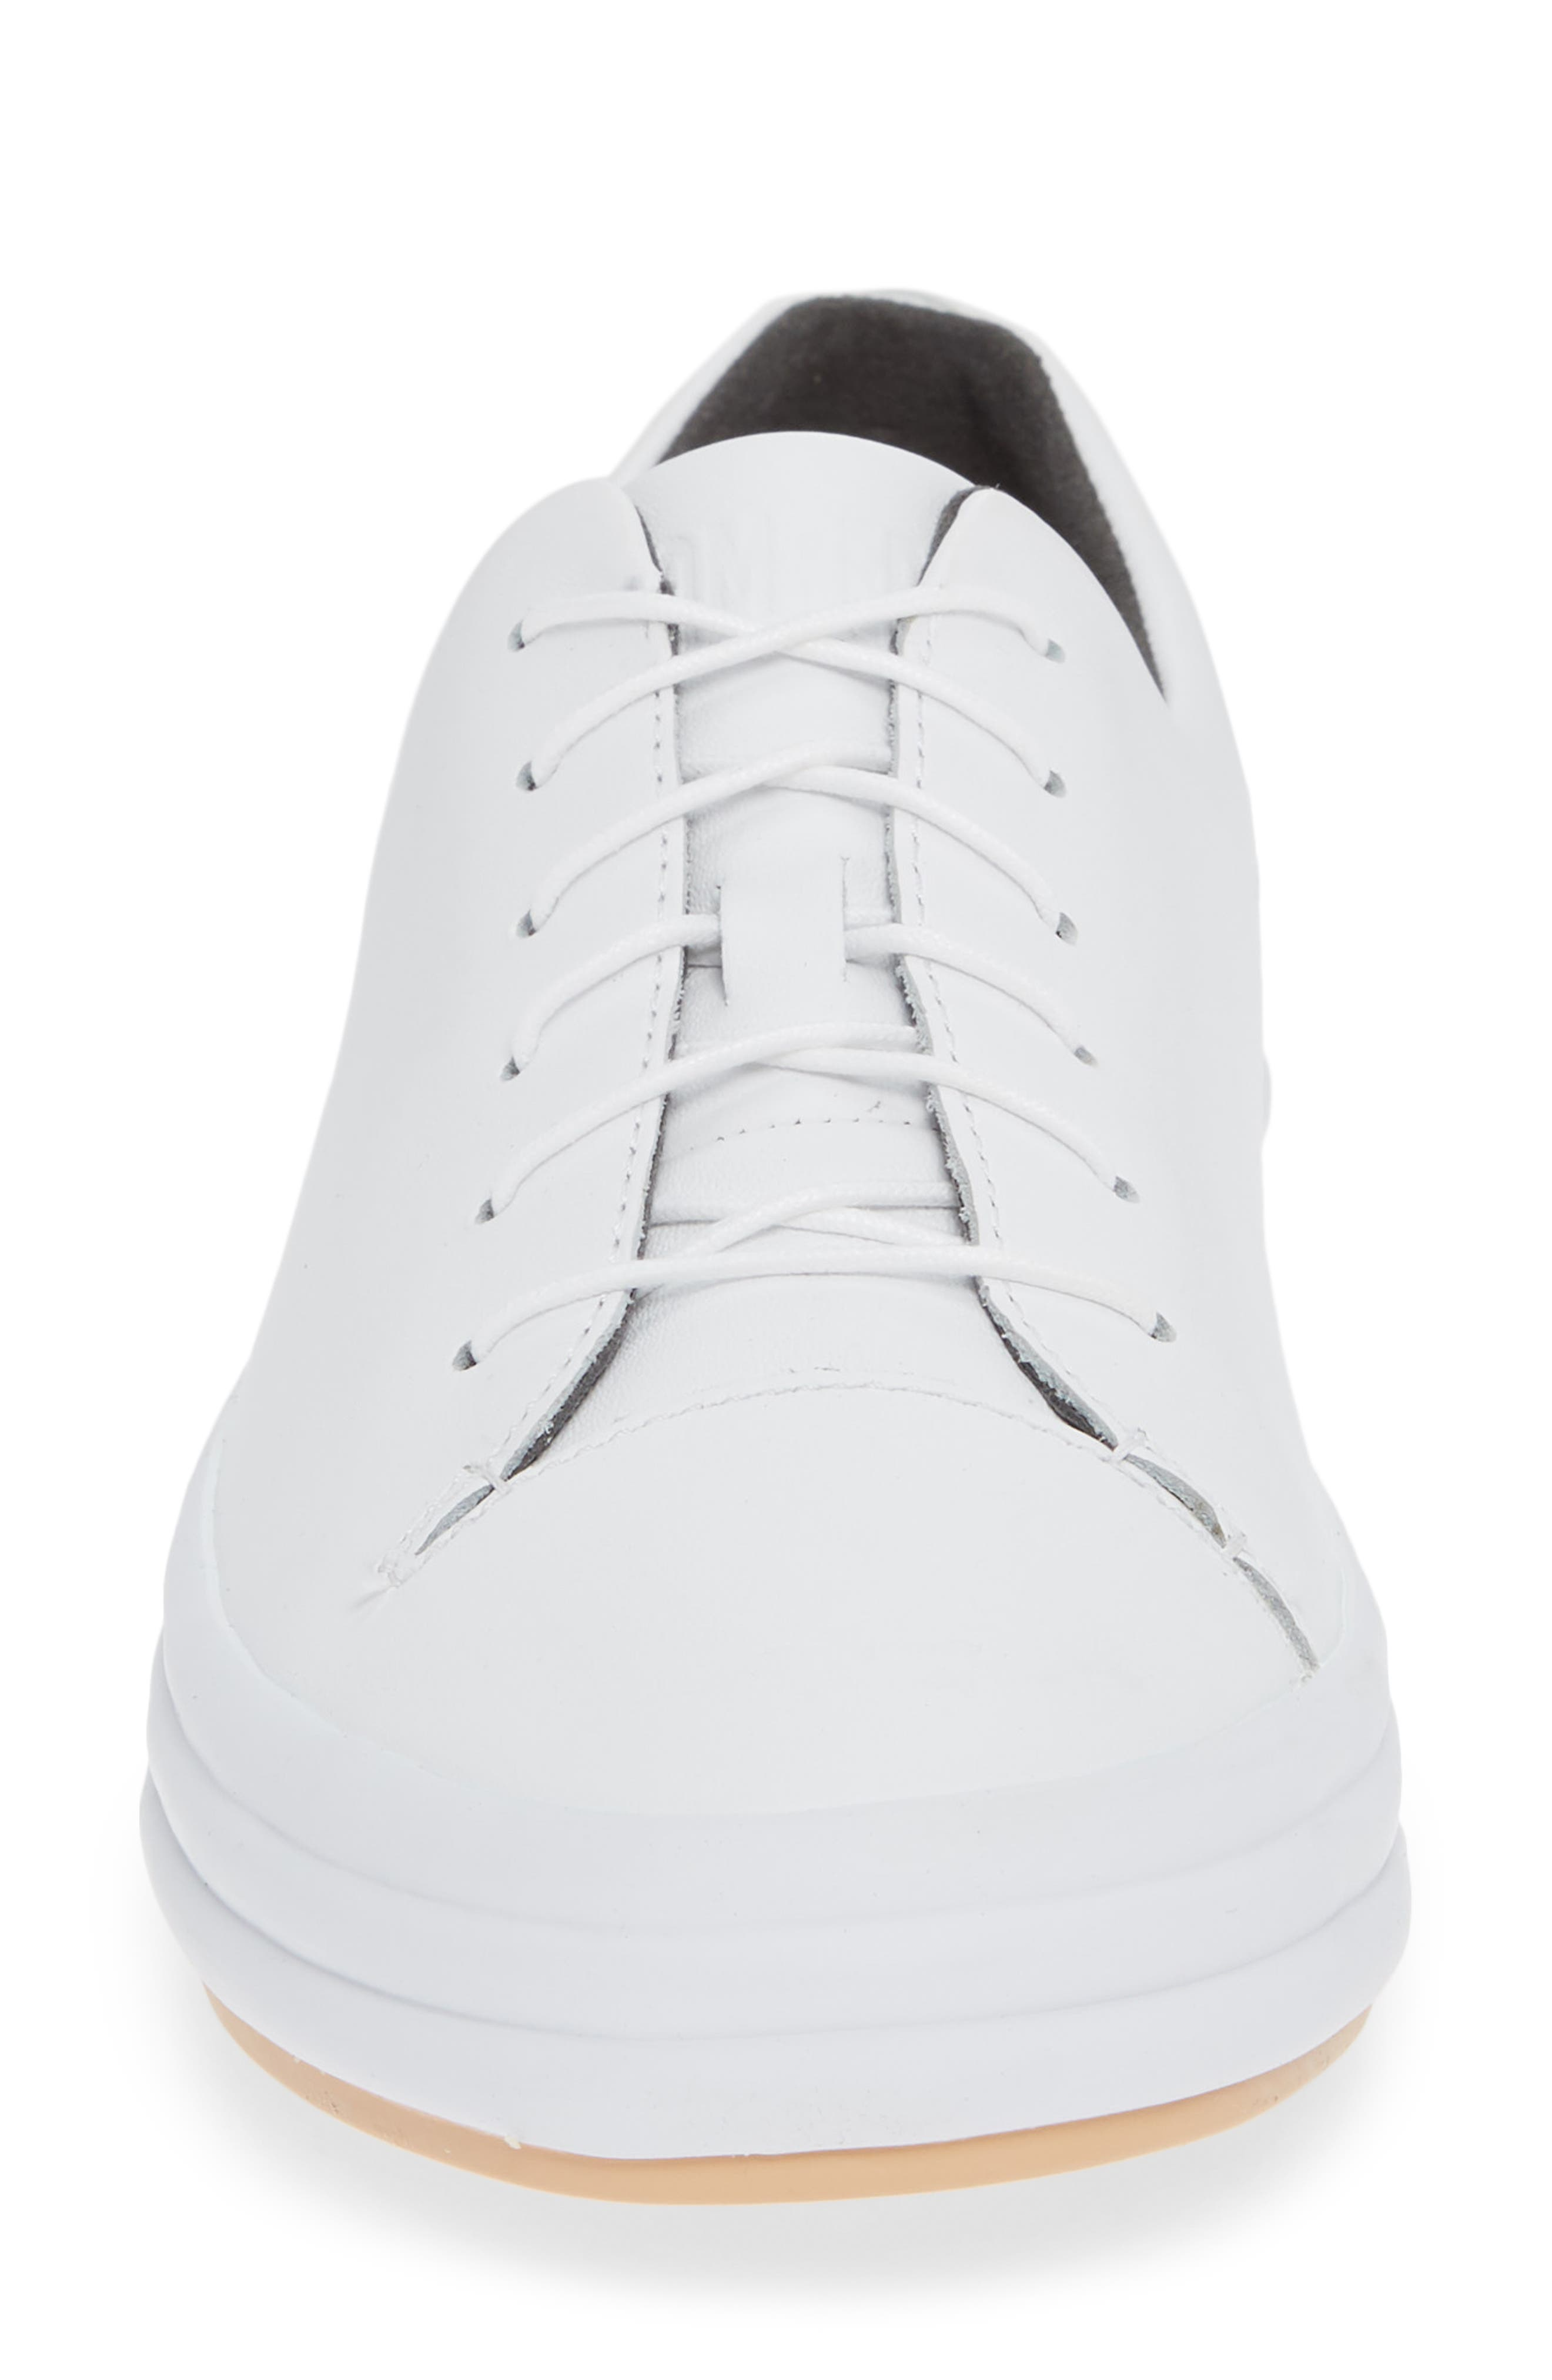 Hoops Sneaker,                             Alternate thumbnail 4, color,                             WHITE LEATHER